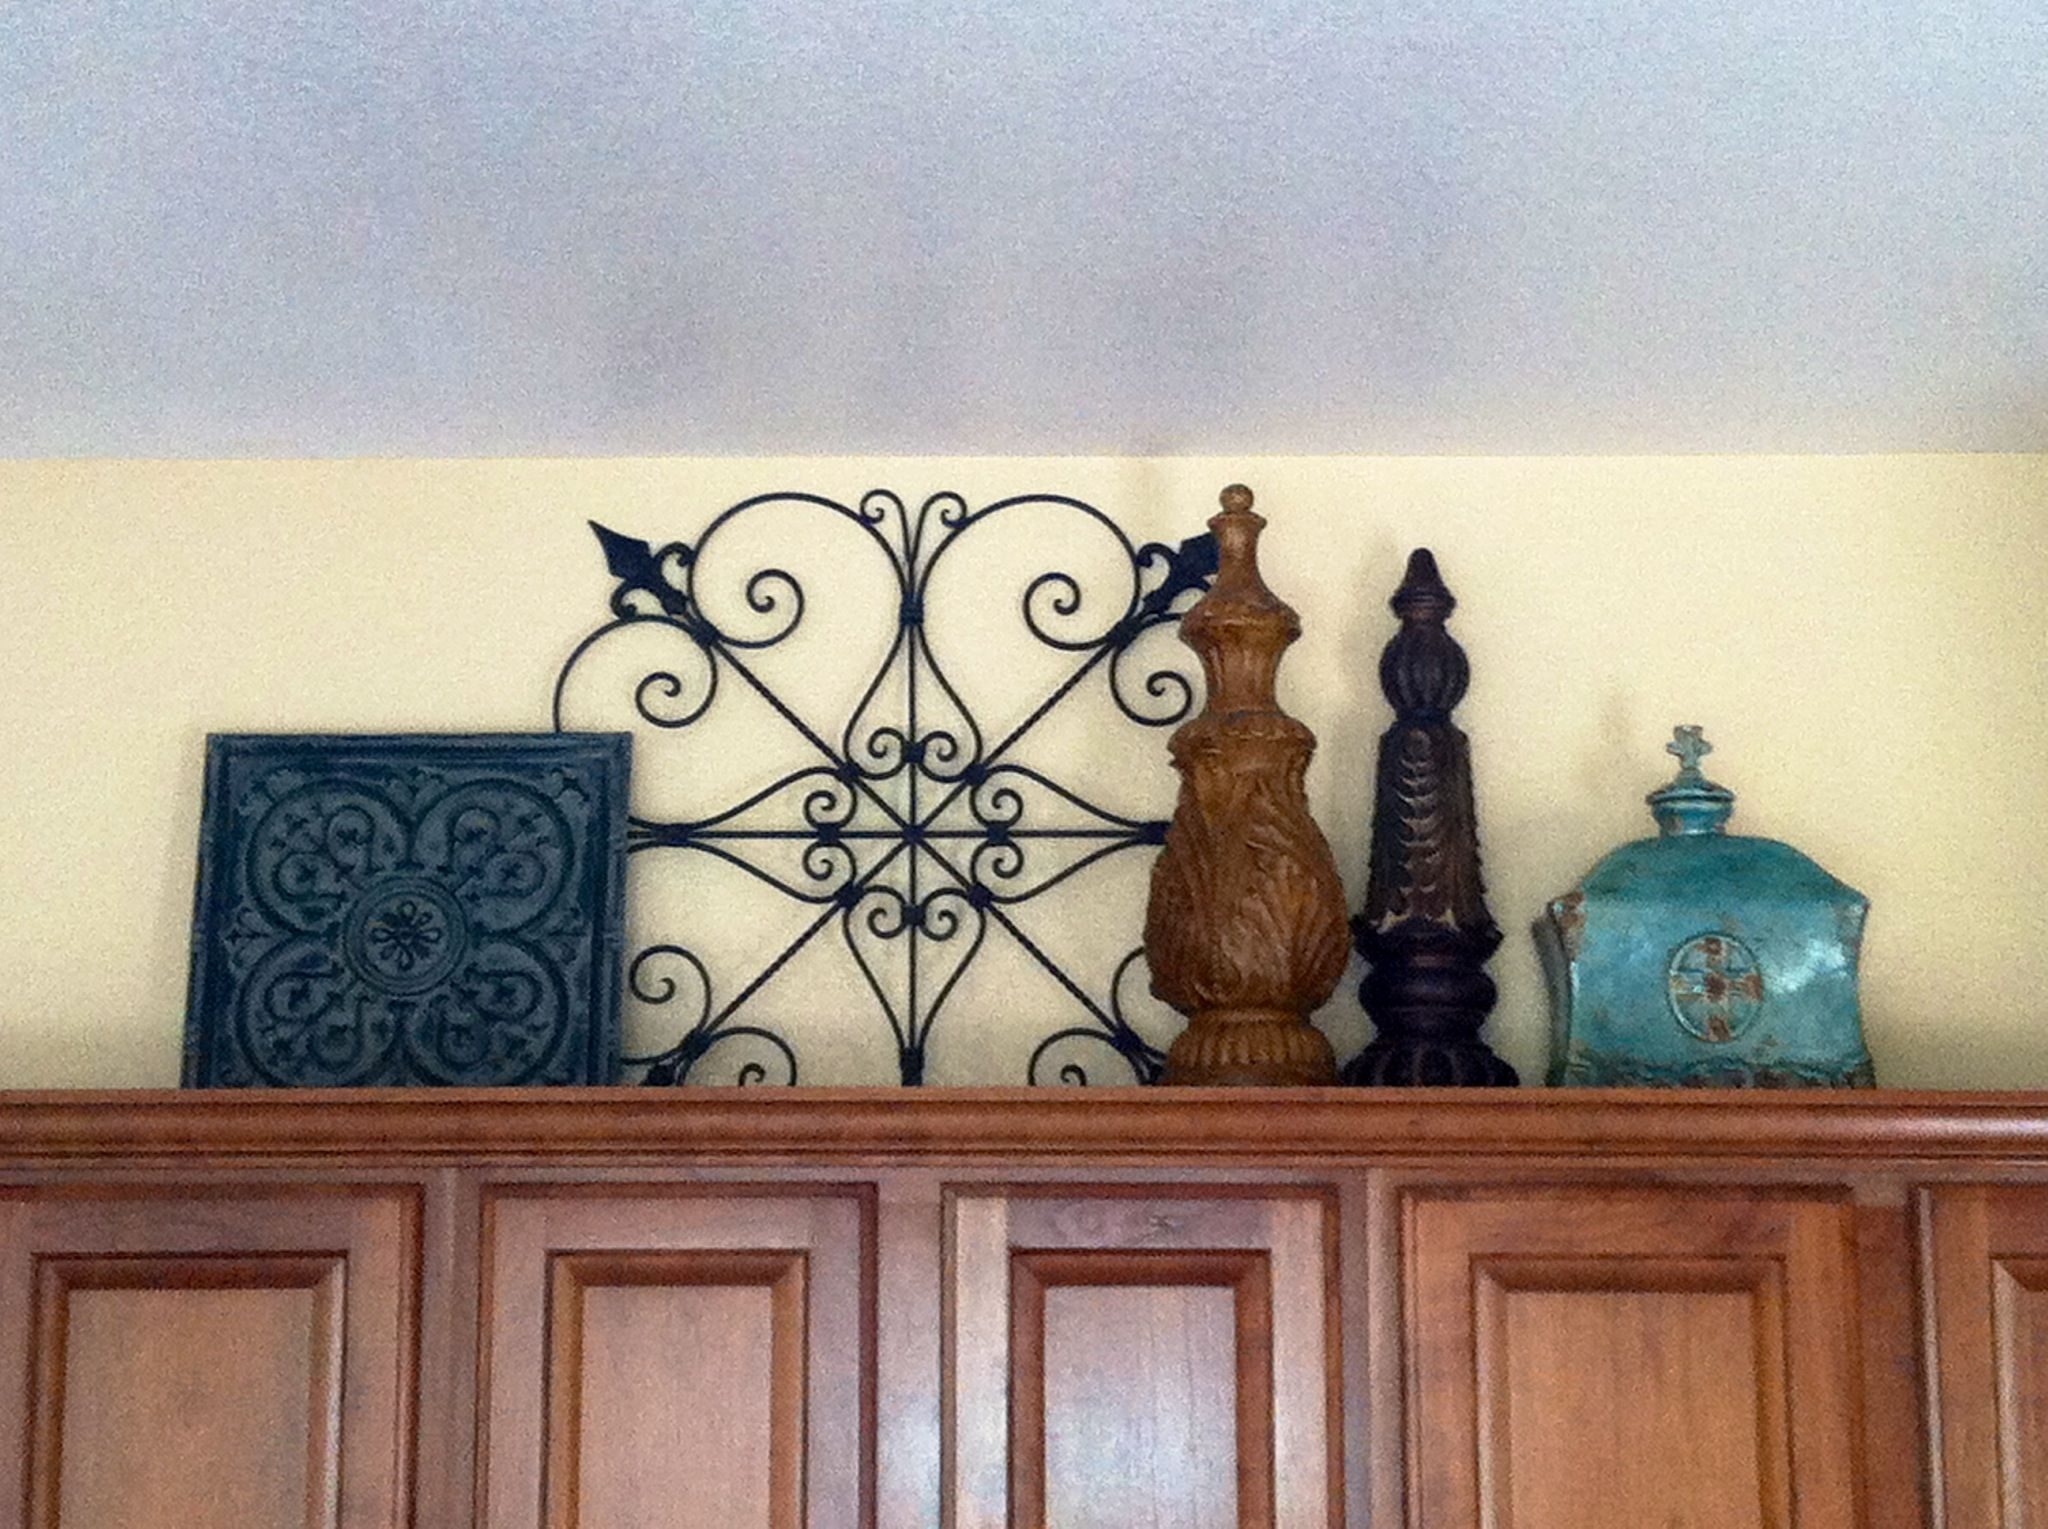 best 25 kitchen cabinet accessories ideas on pinterest corner decorating above kitchen cabinets all items purchased from home goods hobby lobby